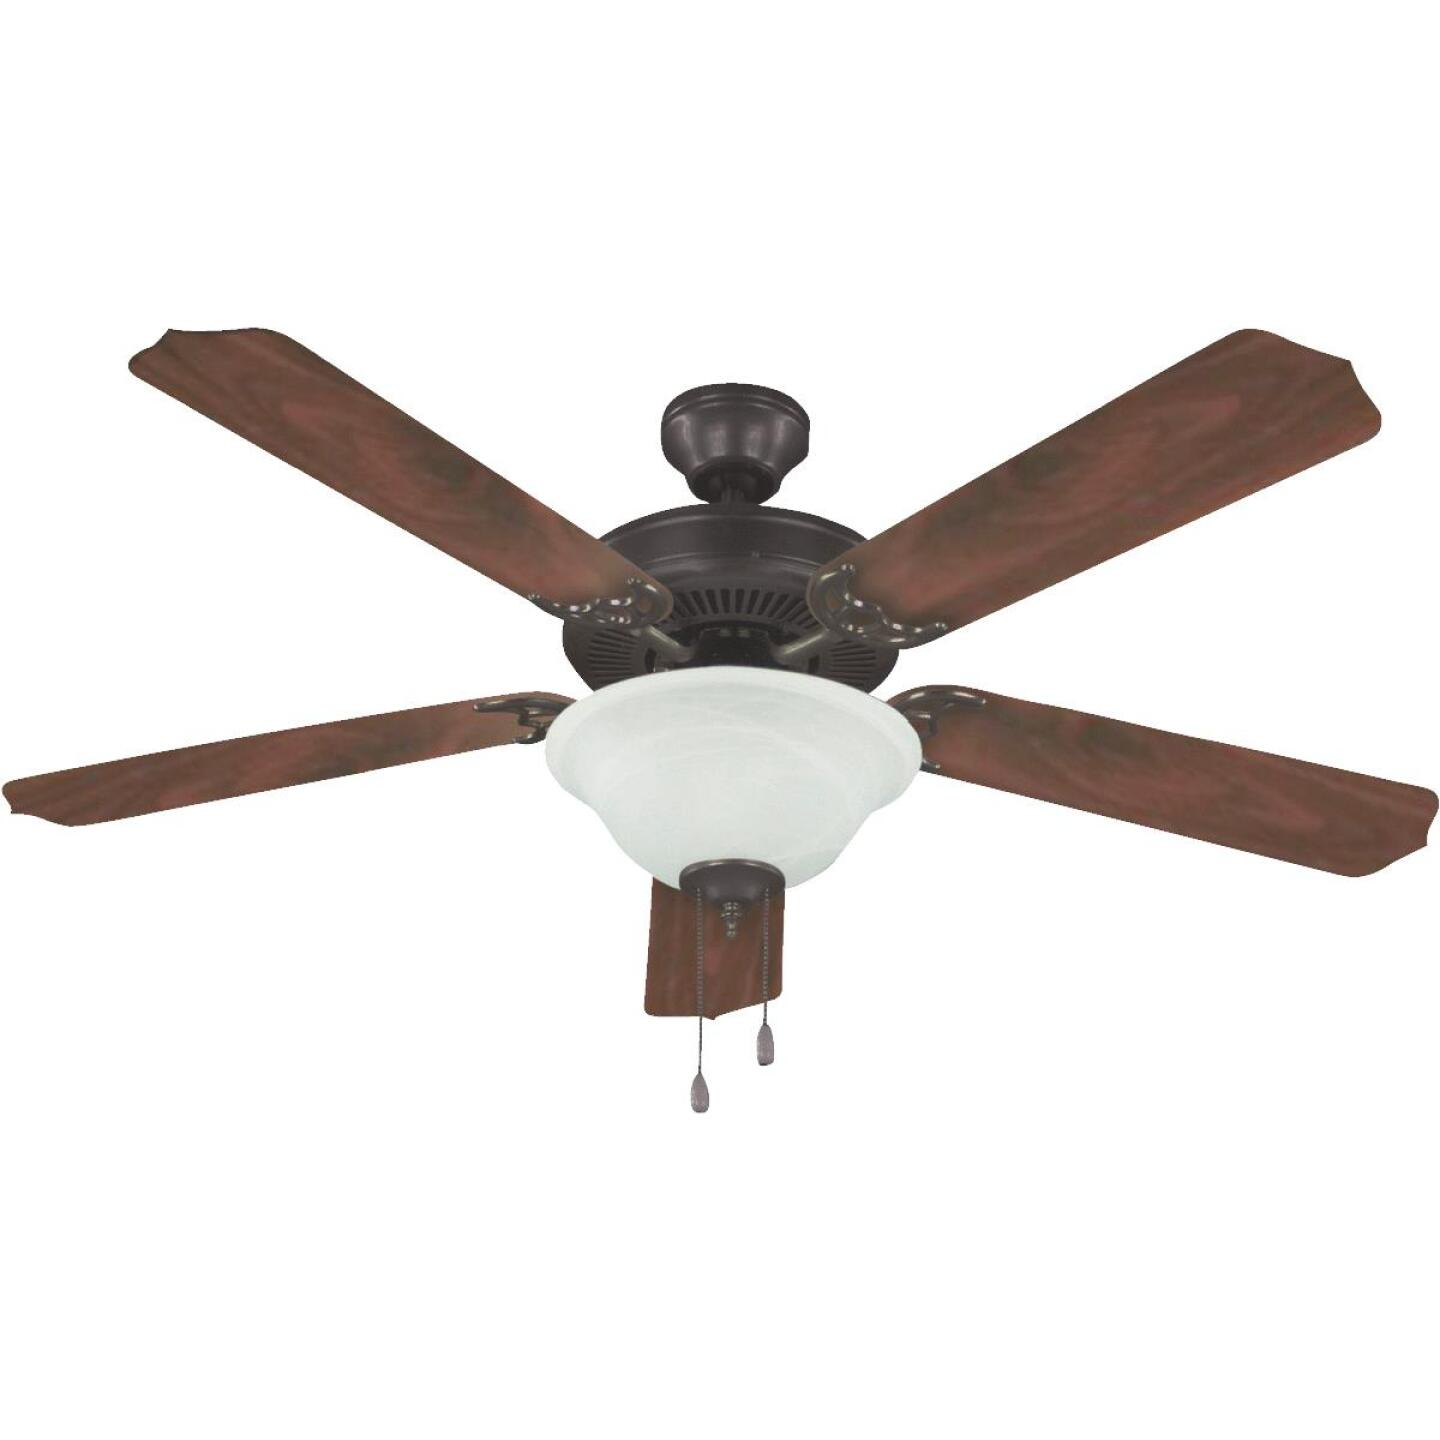 Home Impressions Baylor 52 In. Oil Rubbed Bronze Ceiling Fan with Light Kit Image 1